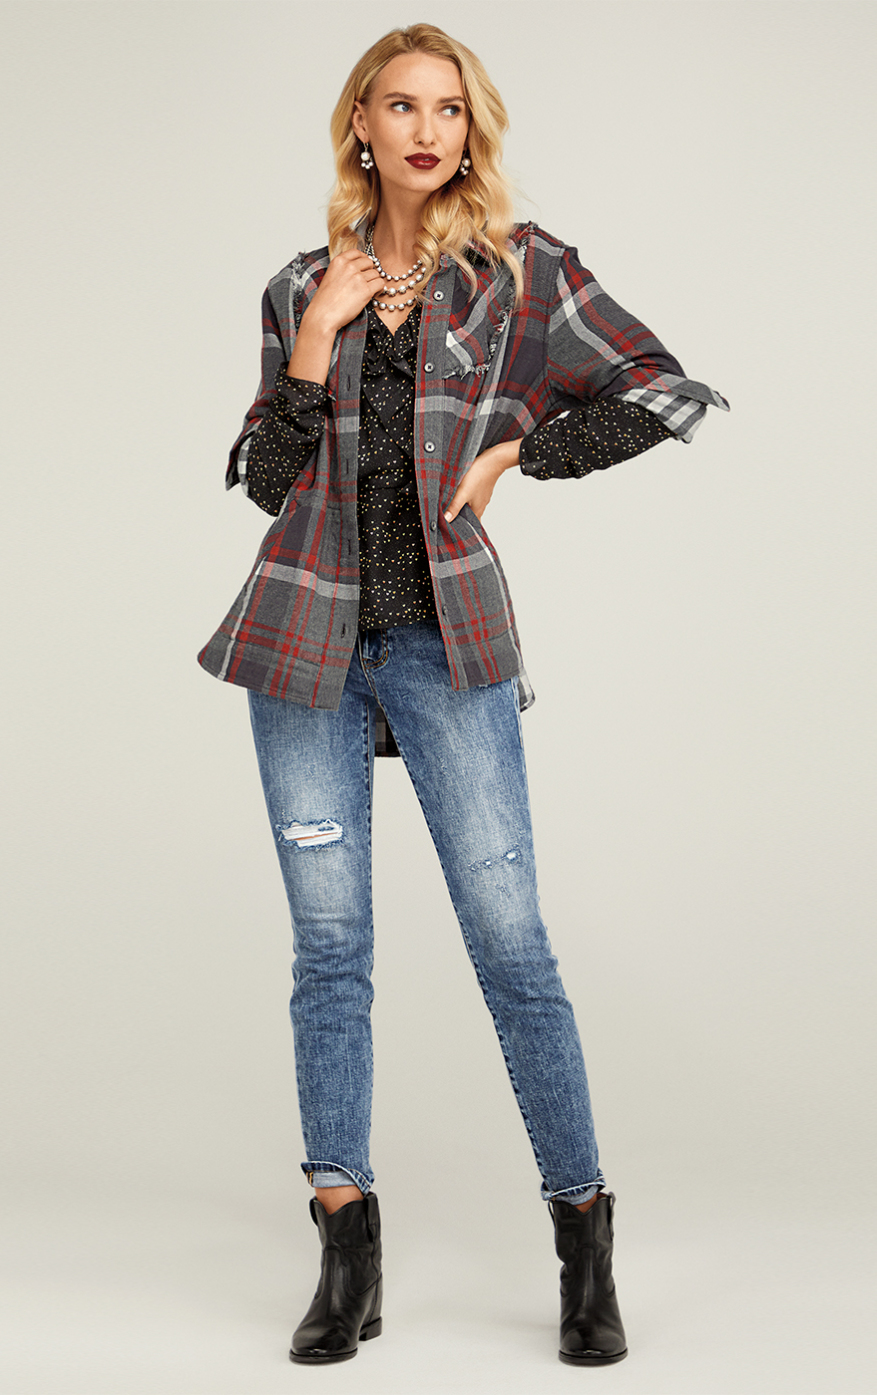 Cinch Skinny in Adventure Wash, Eros Blouse in Baby Hearts, Tavern Shirt in Autumn Plaid